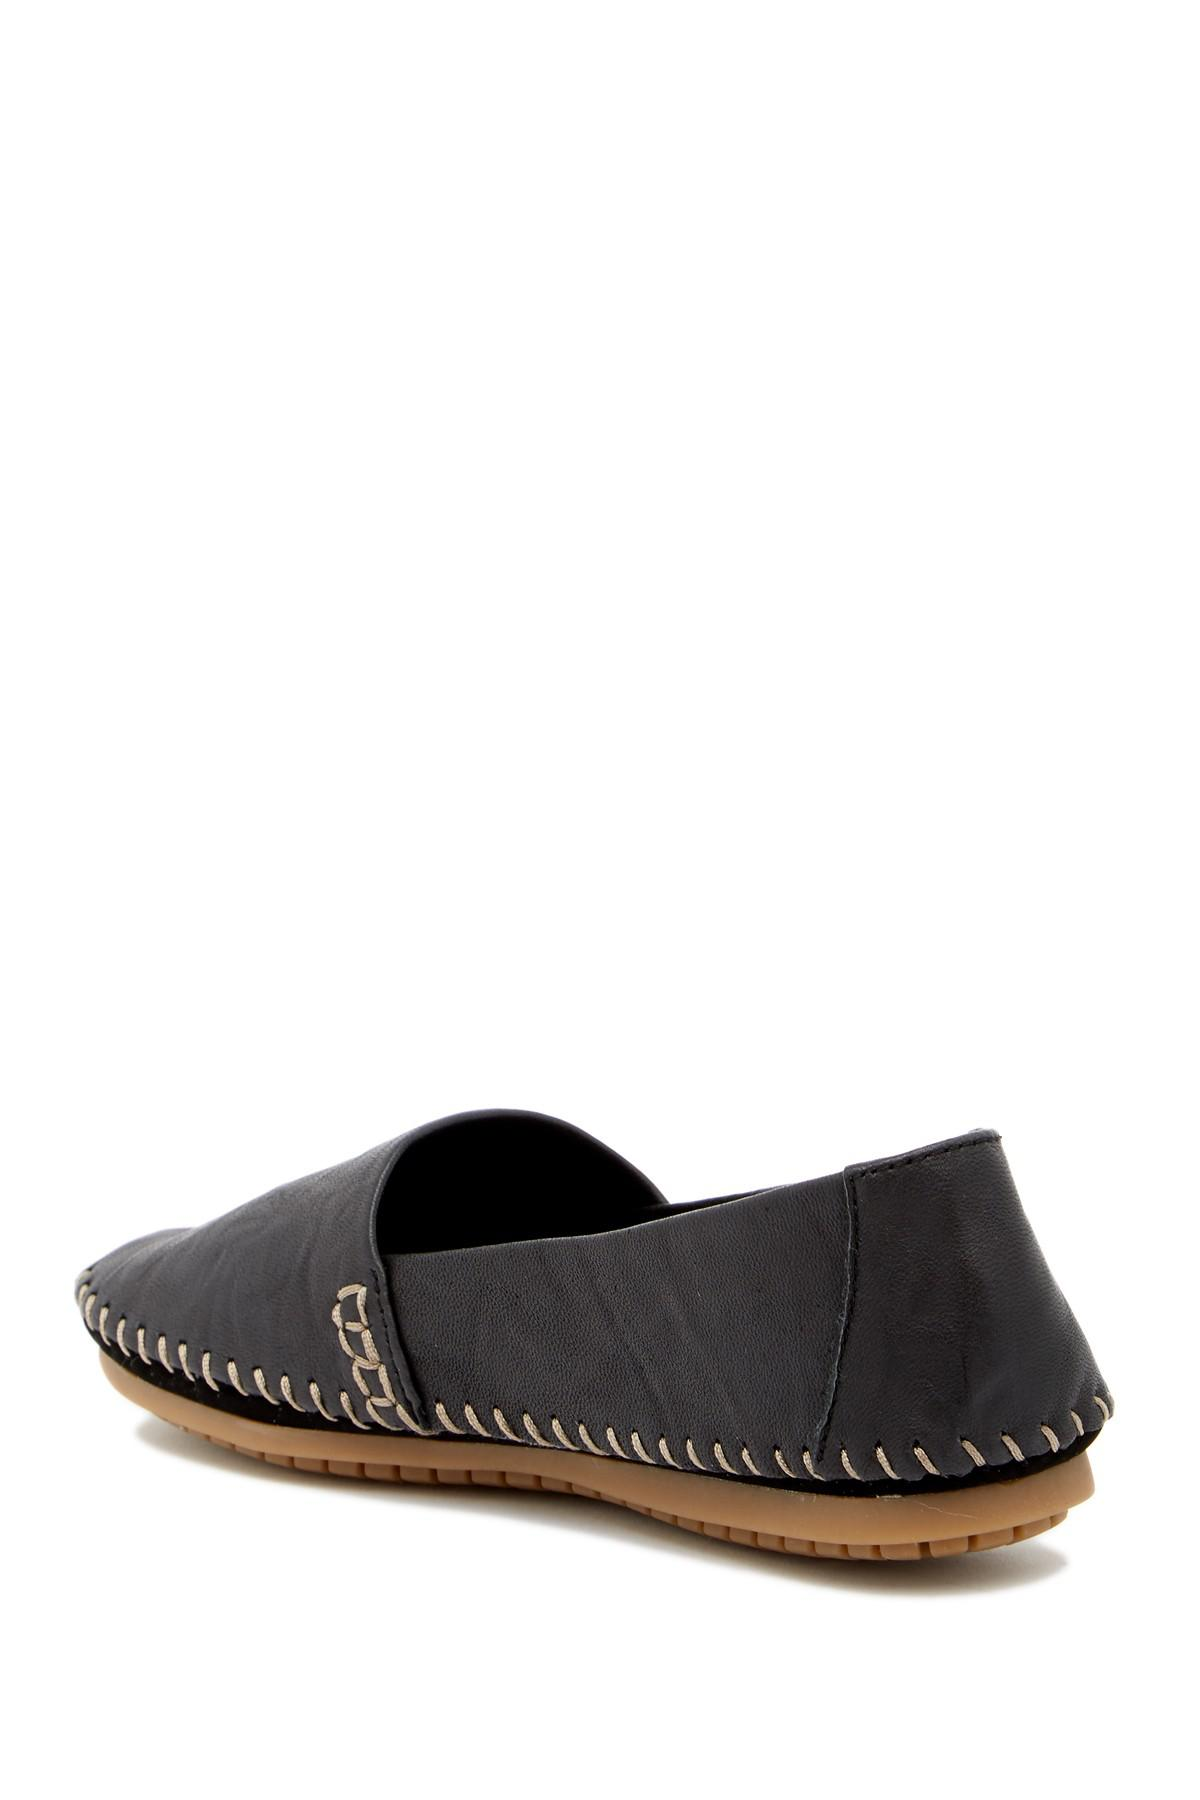 Adam Tucker Solo Slip-On Flat - Wide Width Available sKQK7InWG